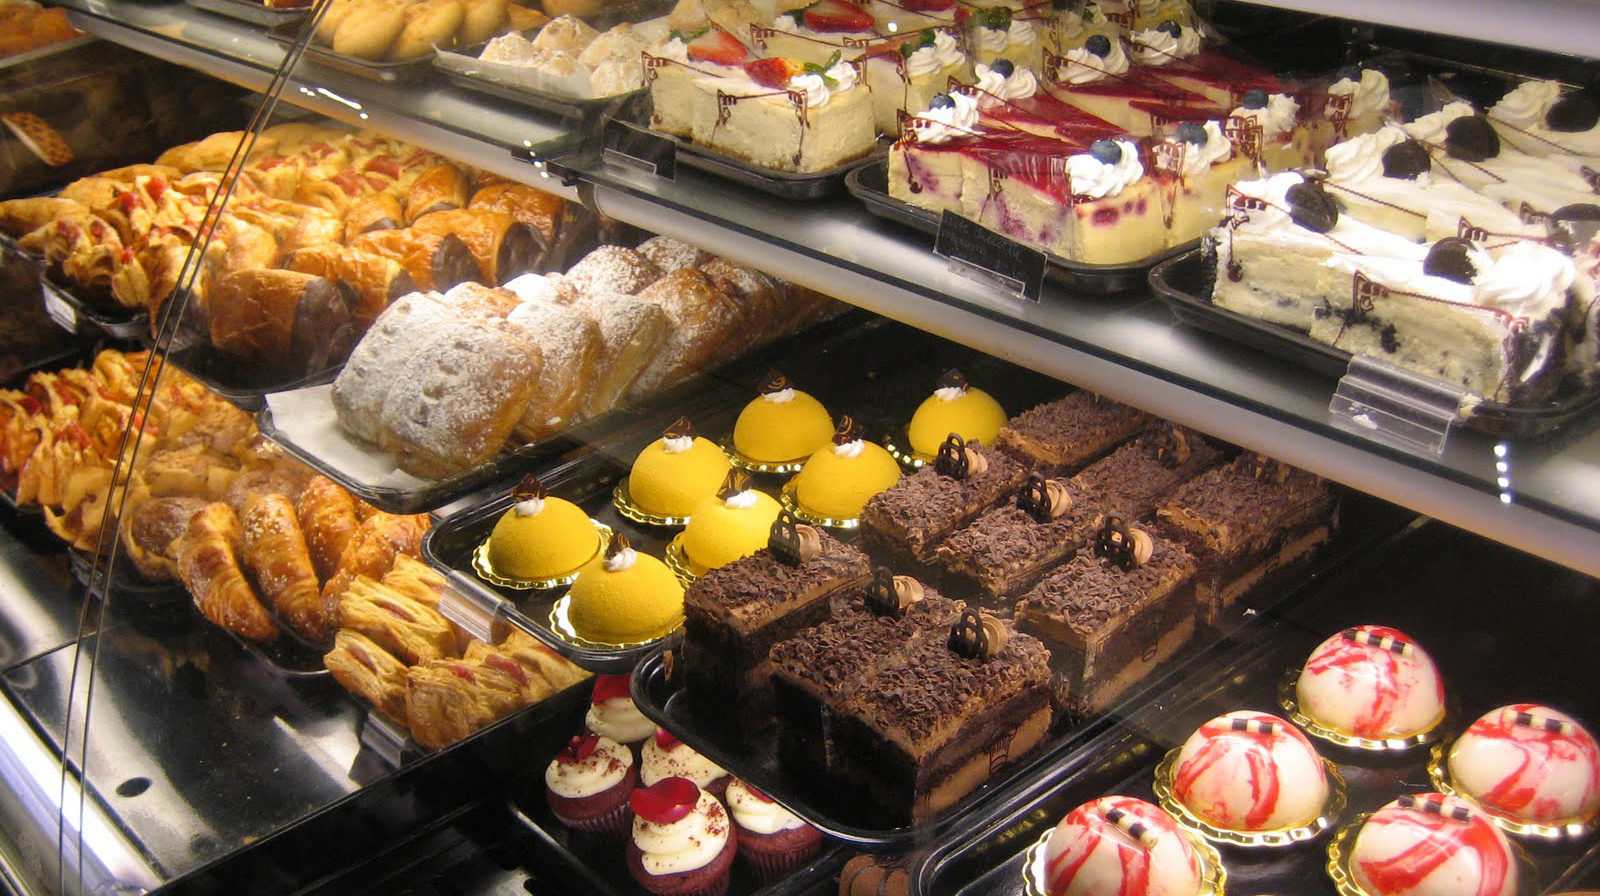 120 out of 126 bakeries in Pune Division fail to follow FSSAI's safety norms